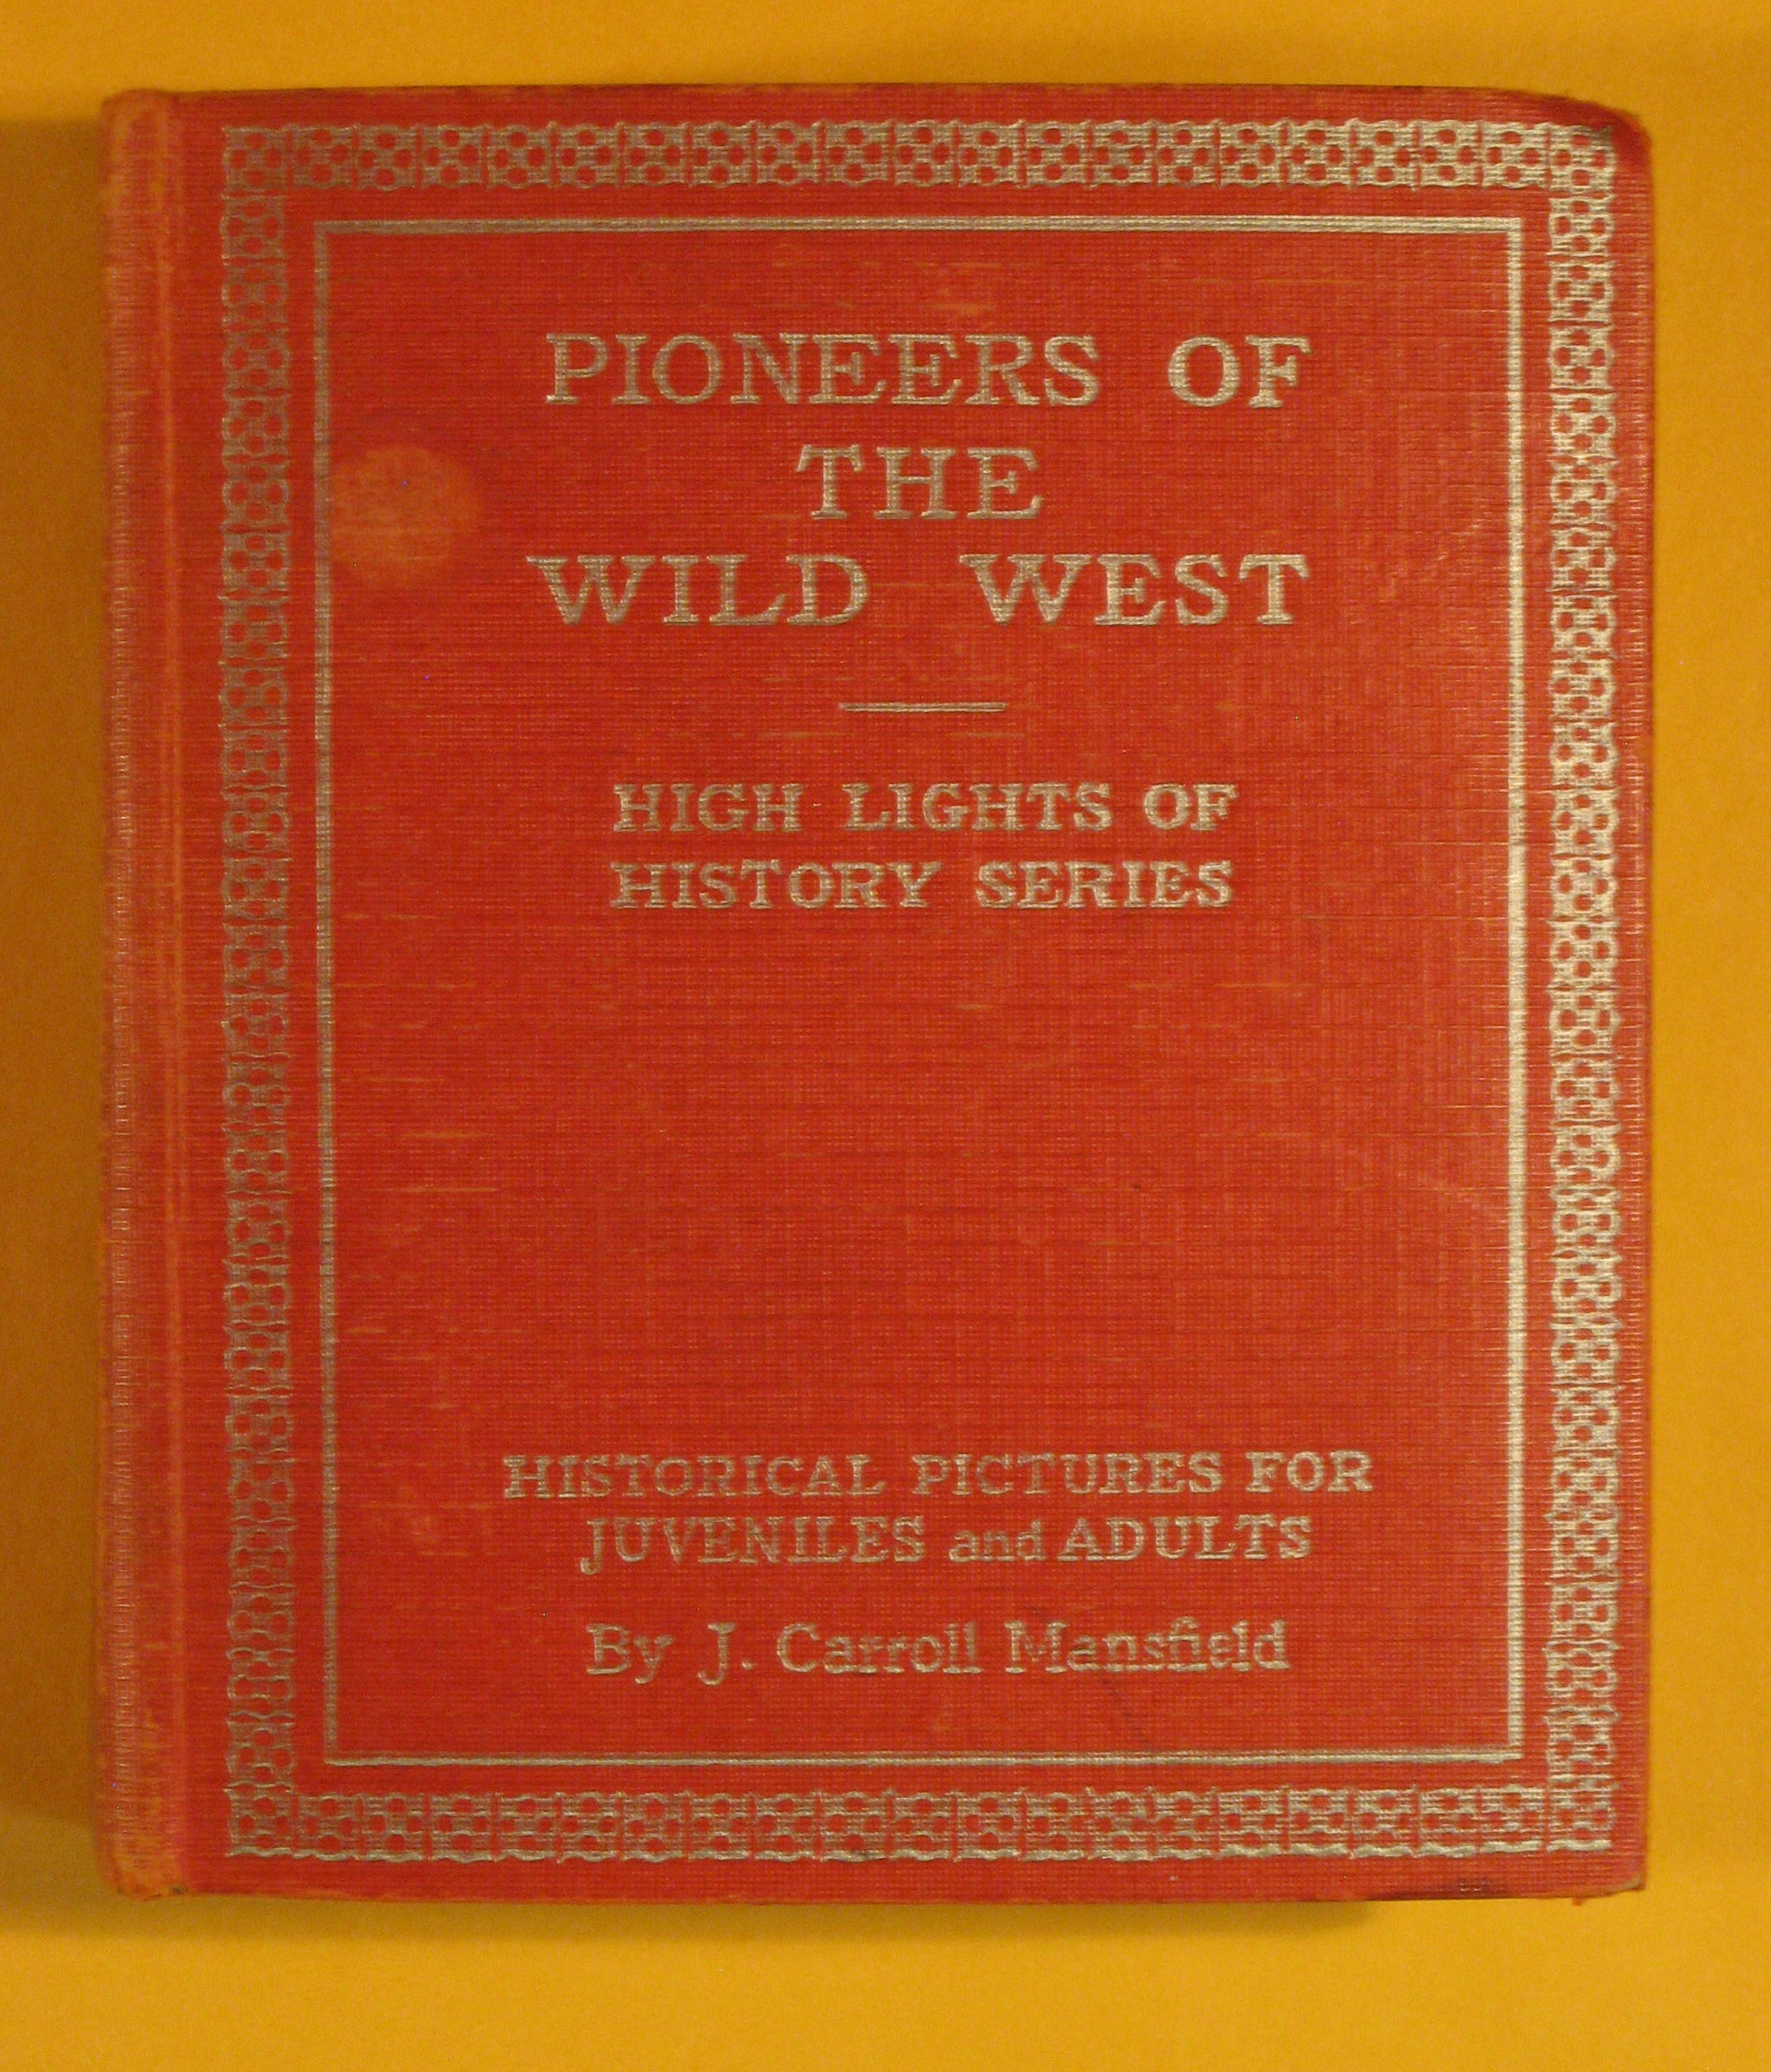 Image for Pioneers of the Wild West (High Lights of History Series)